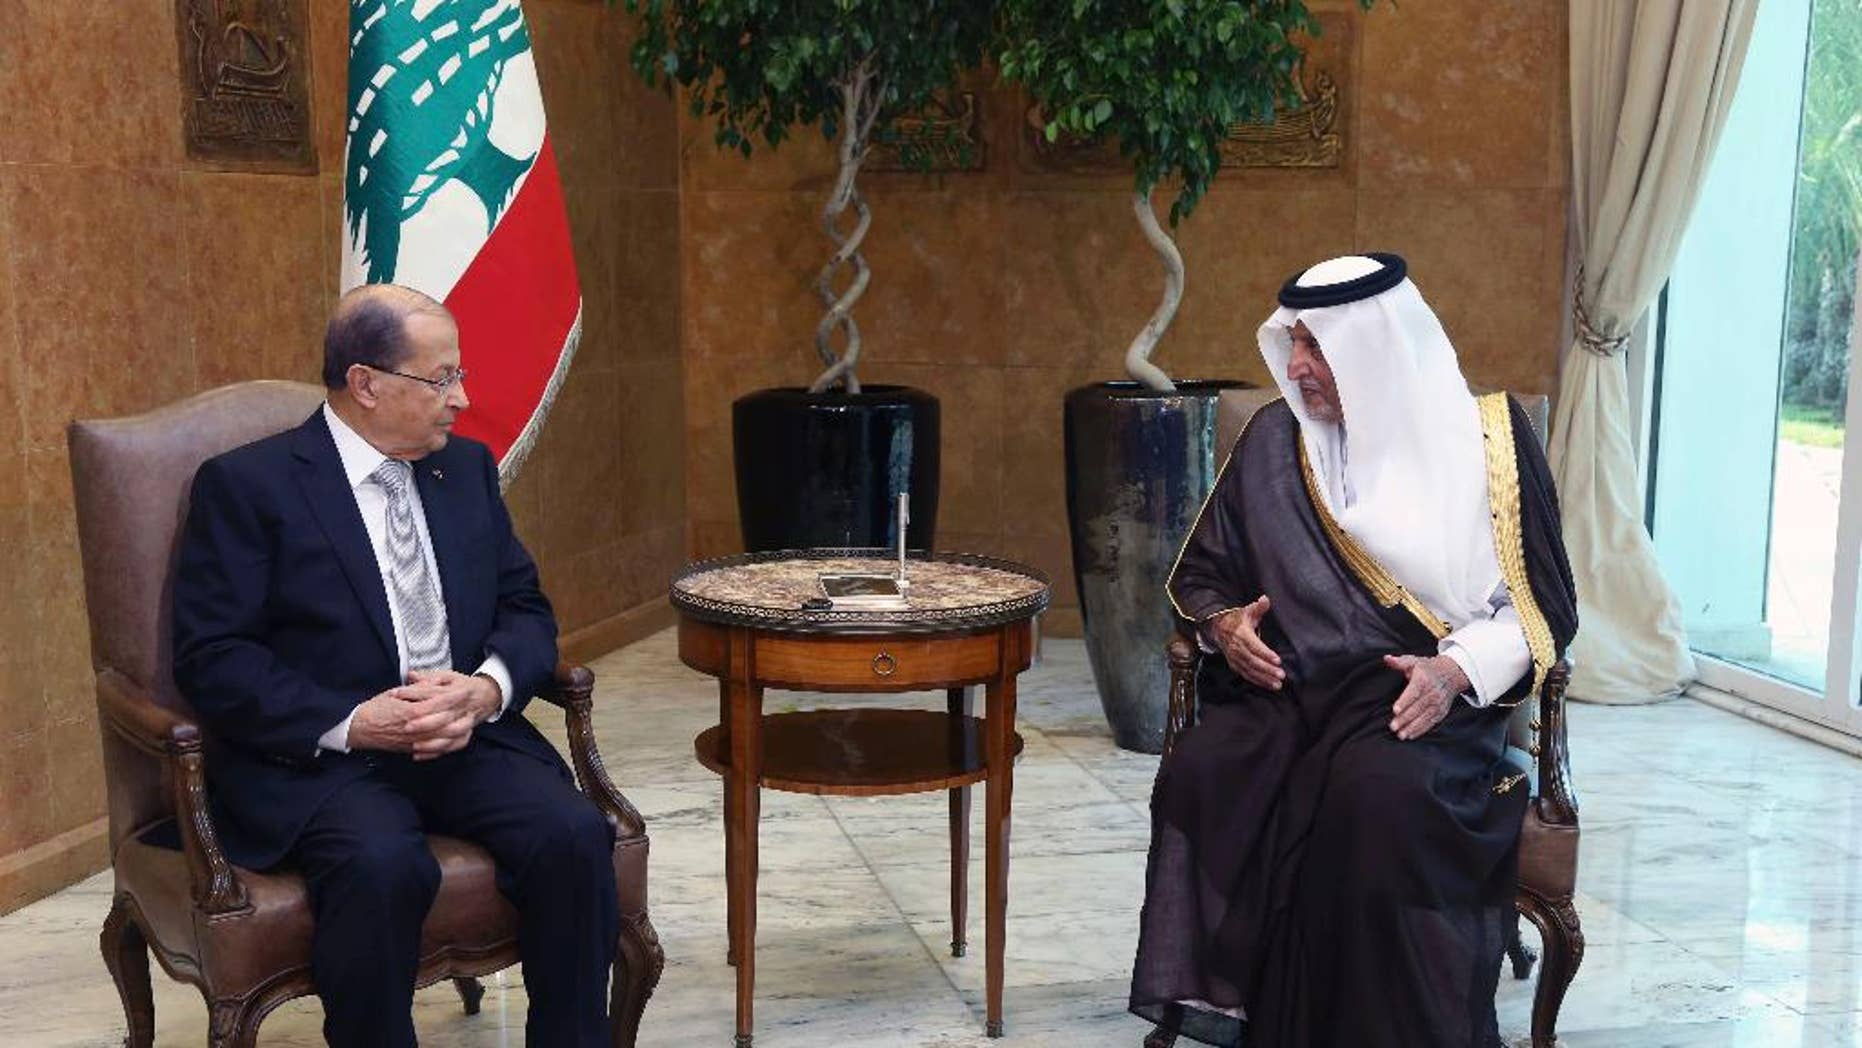 In this photo released by Lebanon's official government photographer Dalati Nohra, Lebanese President Michel Aoun, left, meets with Saudi Arabia's Prince Khaled al-Faisal, at the Presidential Palace in Baabda, east of Beirut, Lebanon, Monday, Nov. 21, 2016. al-Faisal said, he handed an invitation to the newly elected Lebanese president to visit the oil-rich kingdom. (Dalati Nohra via AP)